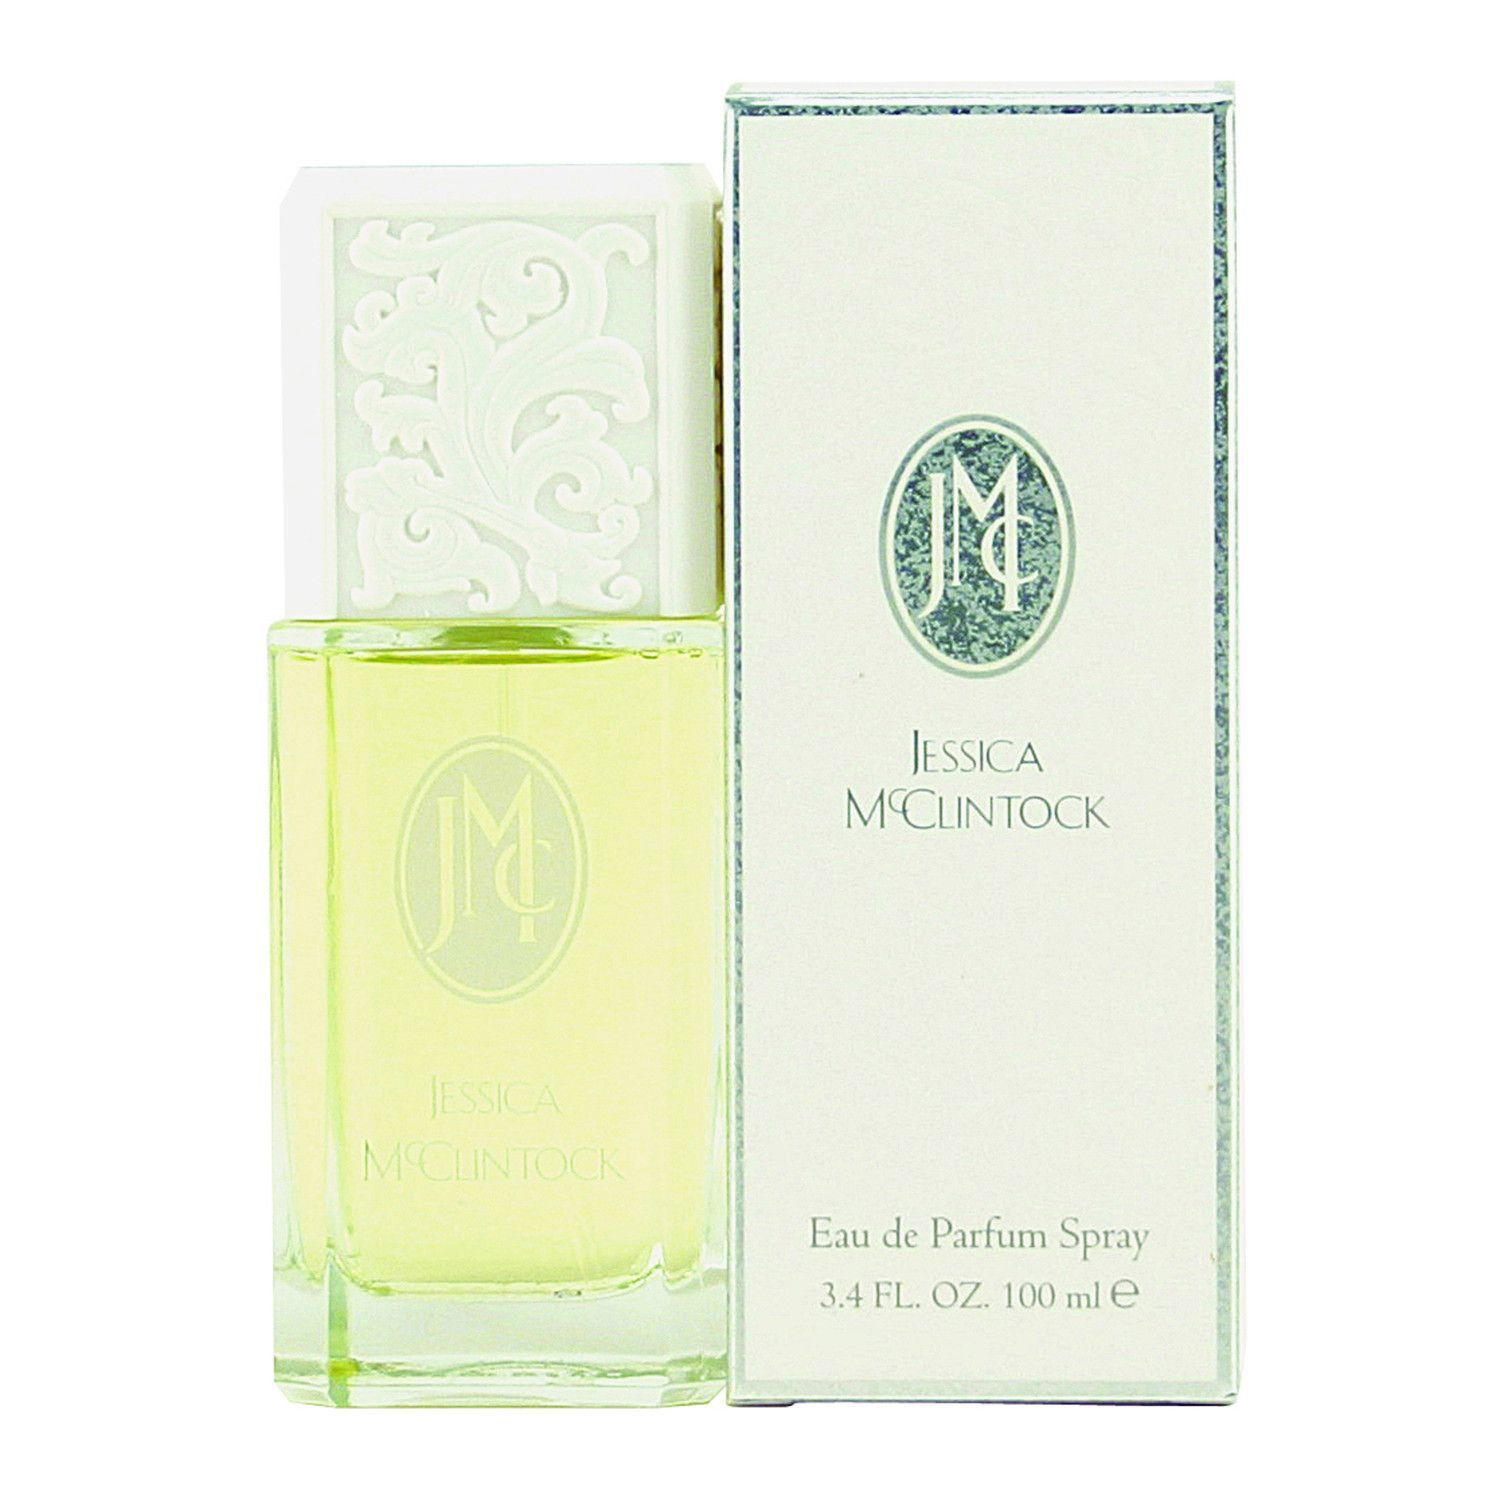 JESSICA McCLINTOCK - EDP SPRAY**